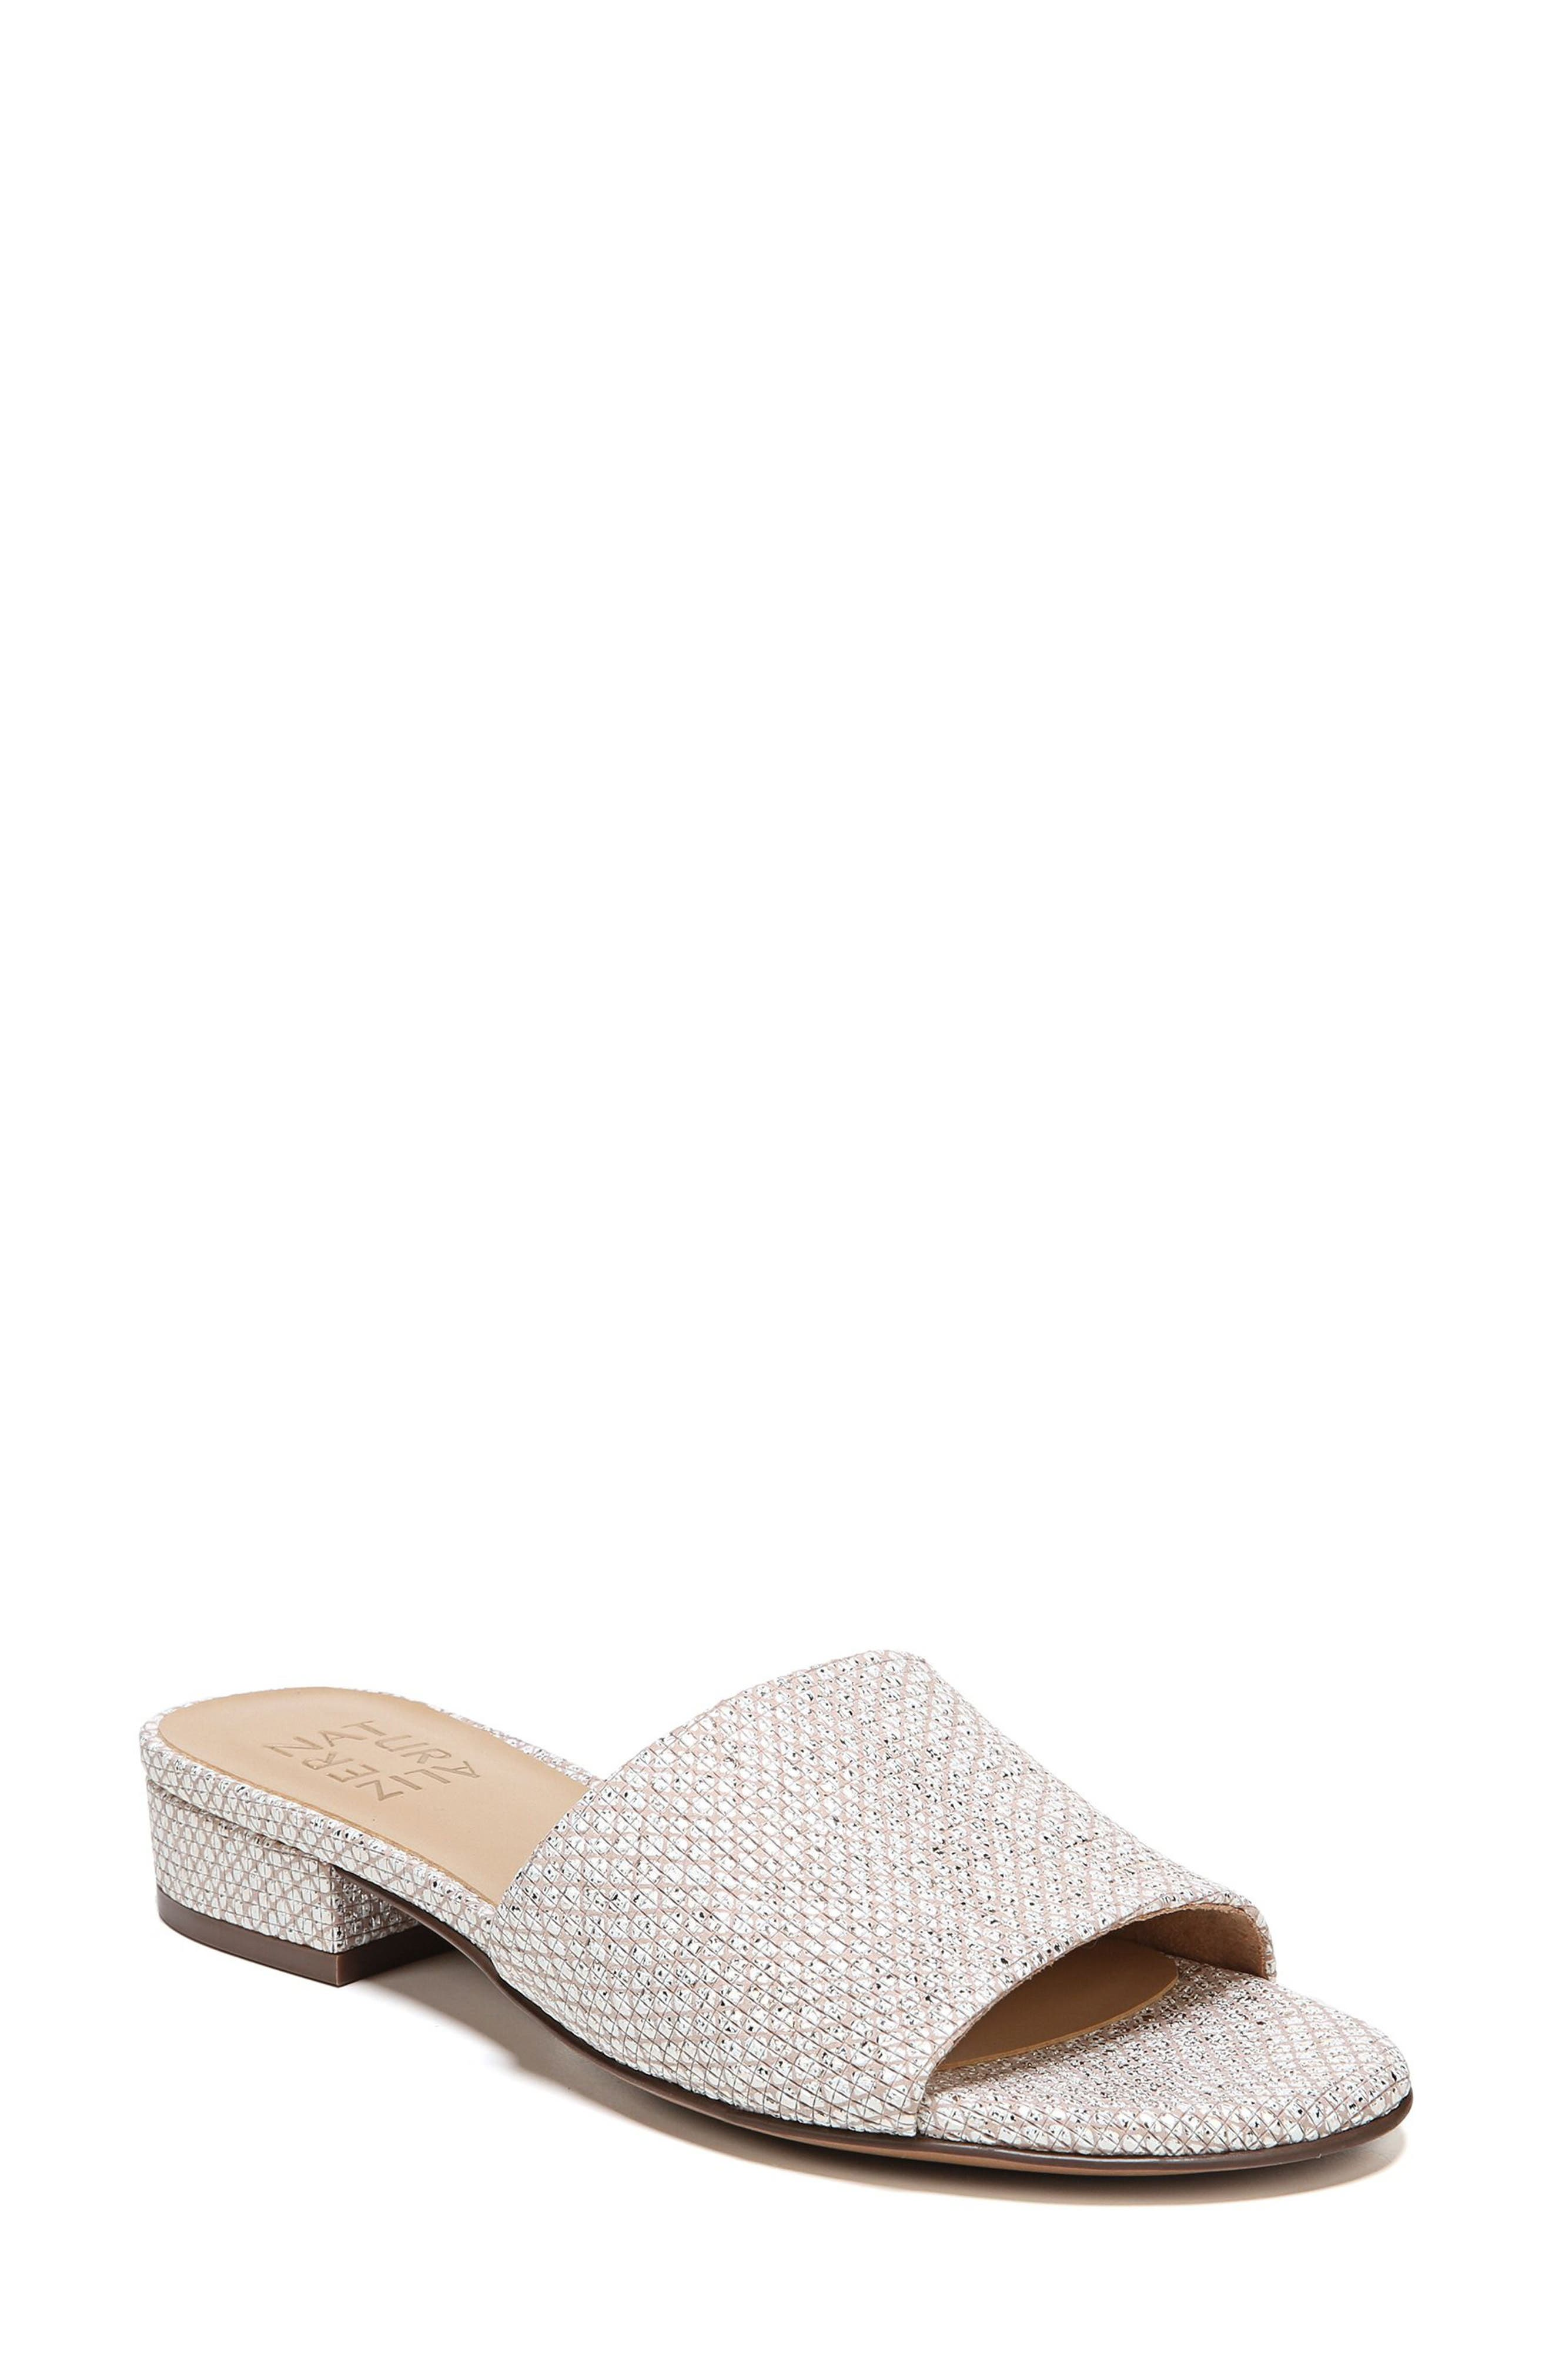 Naturalizer Mason Slide Sandal